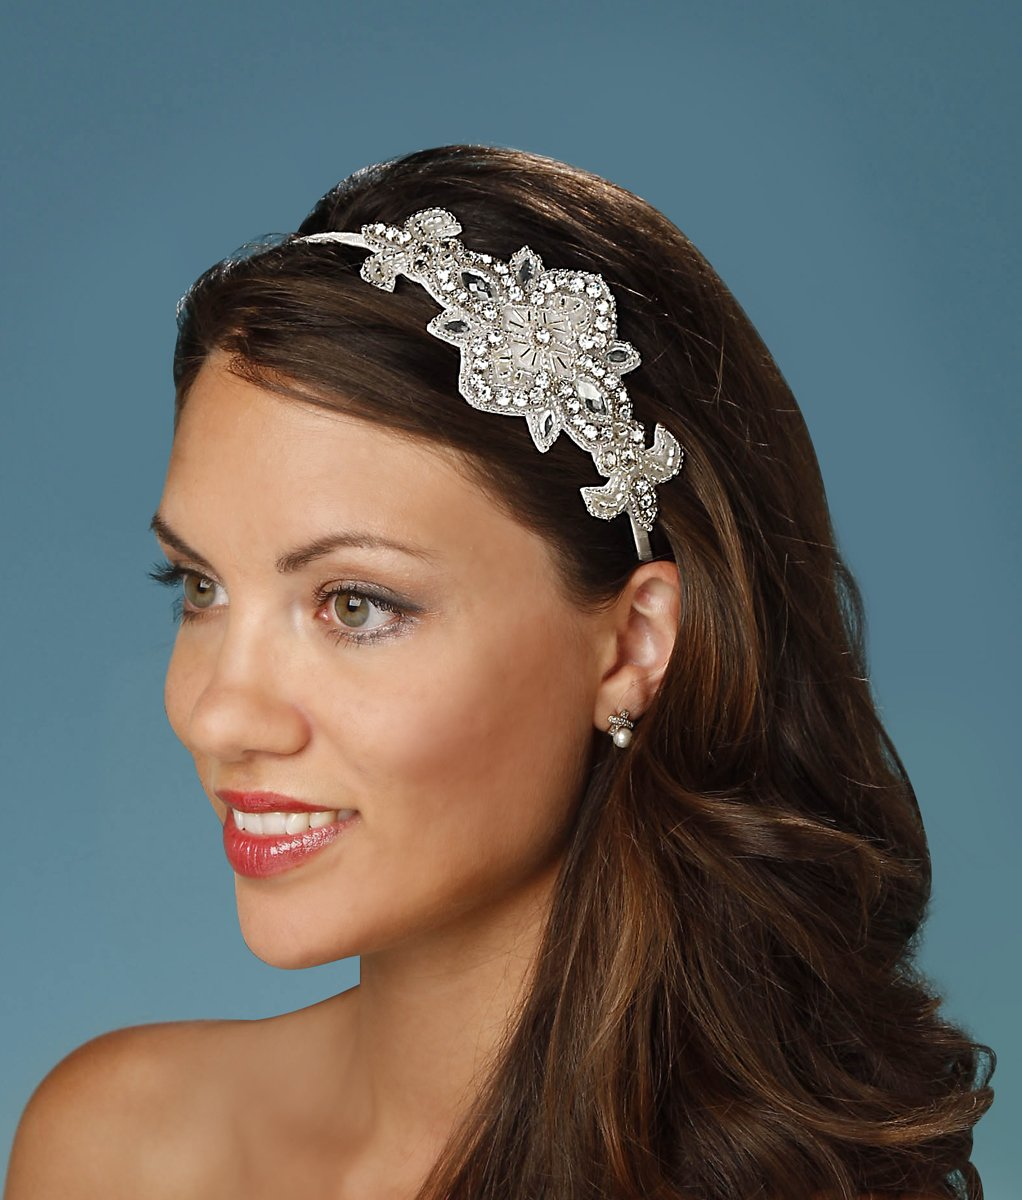 Darice David Tutera Applique Embellished Headband, Cream, AED 41.46